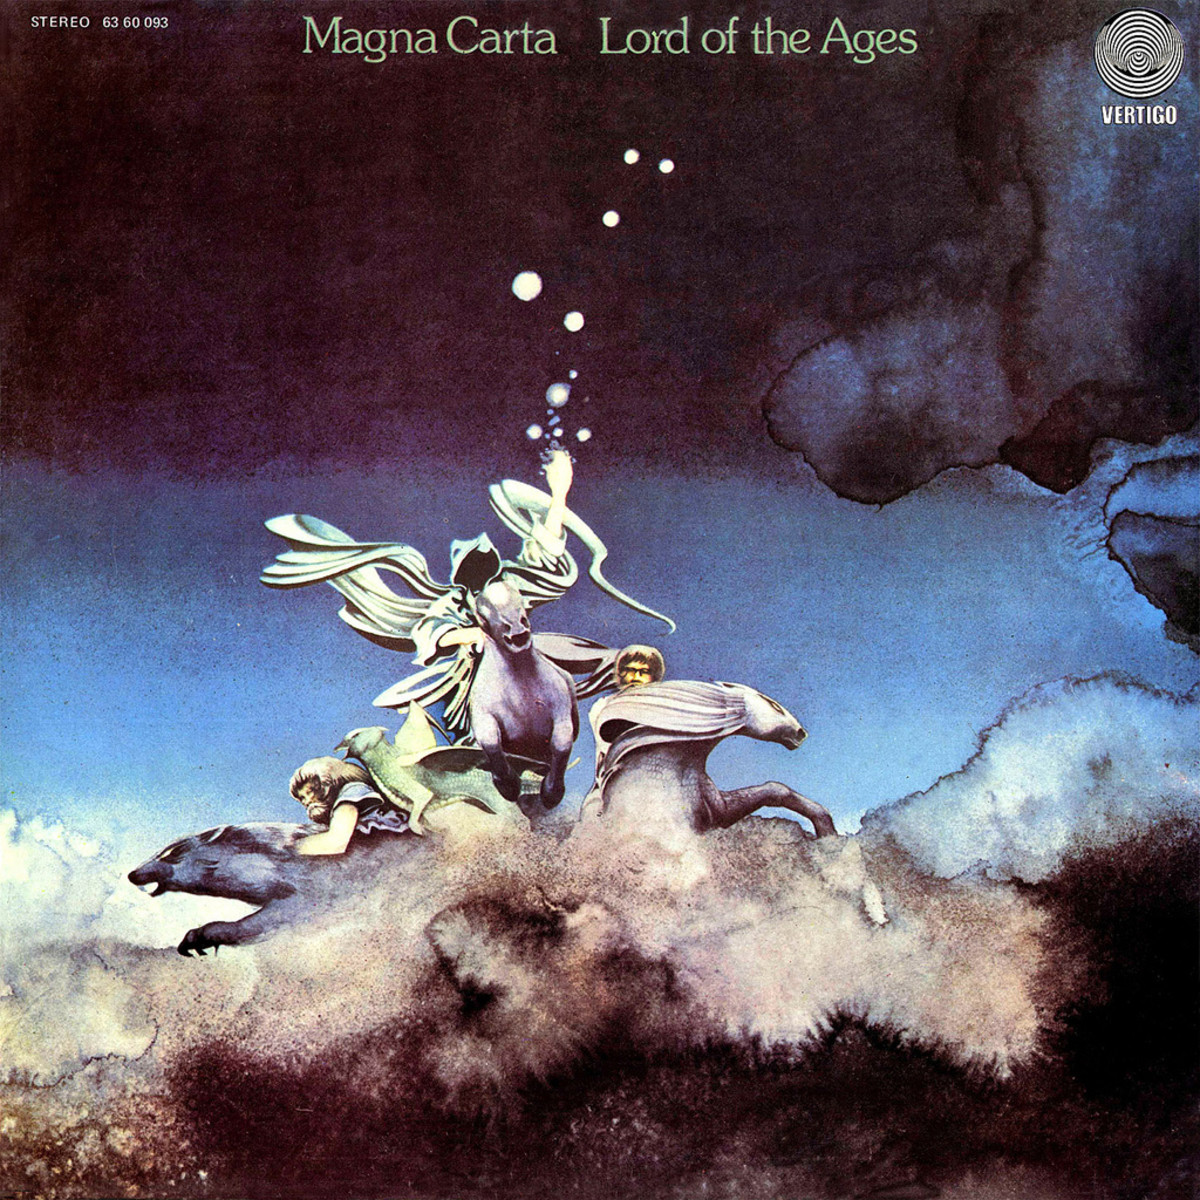 "Magna Carta  ""Lord of the Ages"" Vertigo Records  6360 093 12"" Vinyl Record, UK Pressing (1973) Gatefold Album Cover Art & Design by Roger Dean"